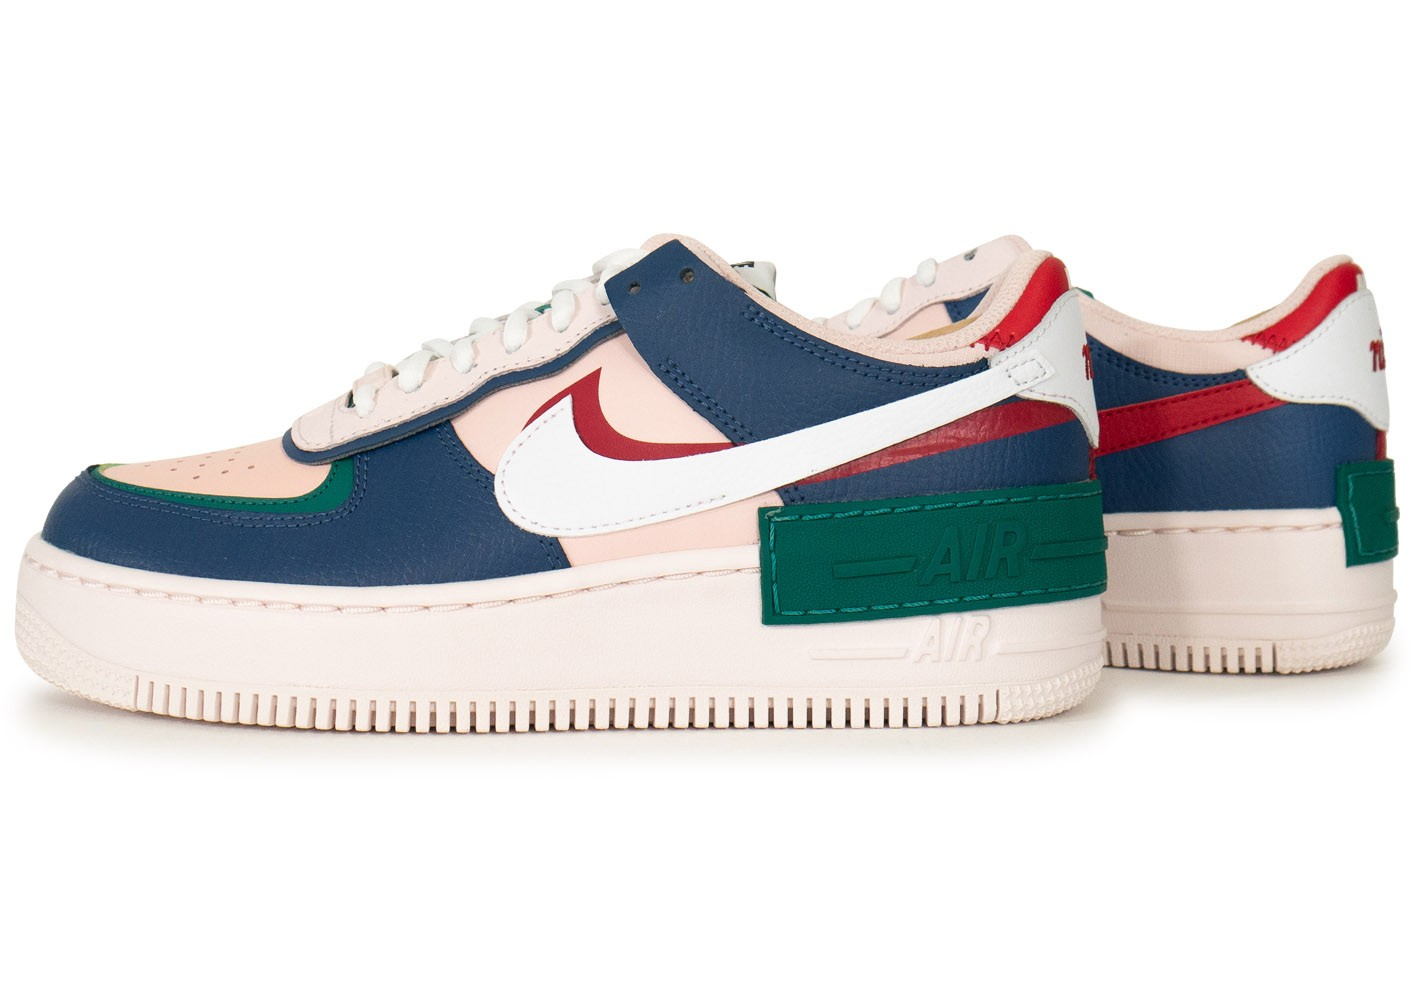 Nike Air Force 1 Shadow rose bleue verte femme - Chaussures ...